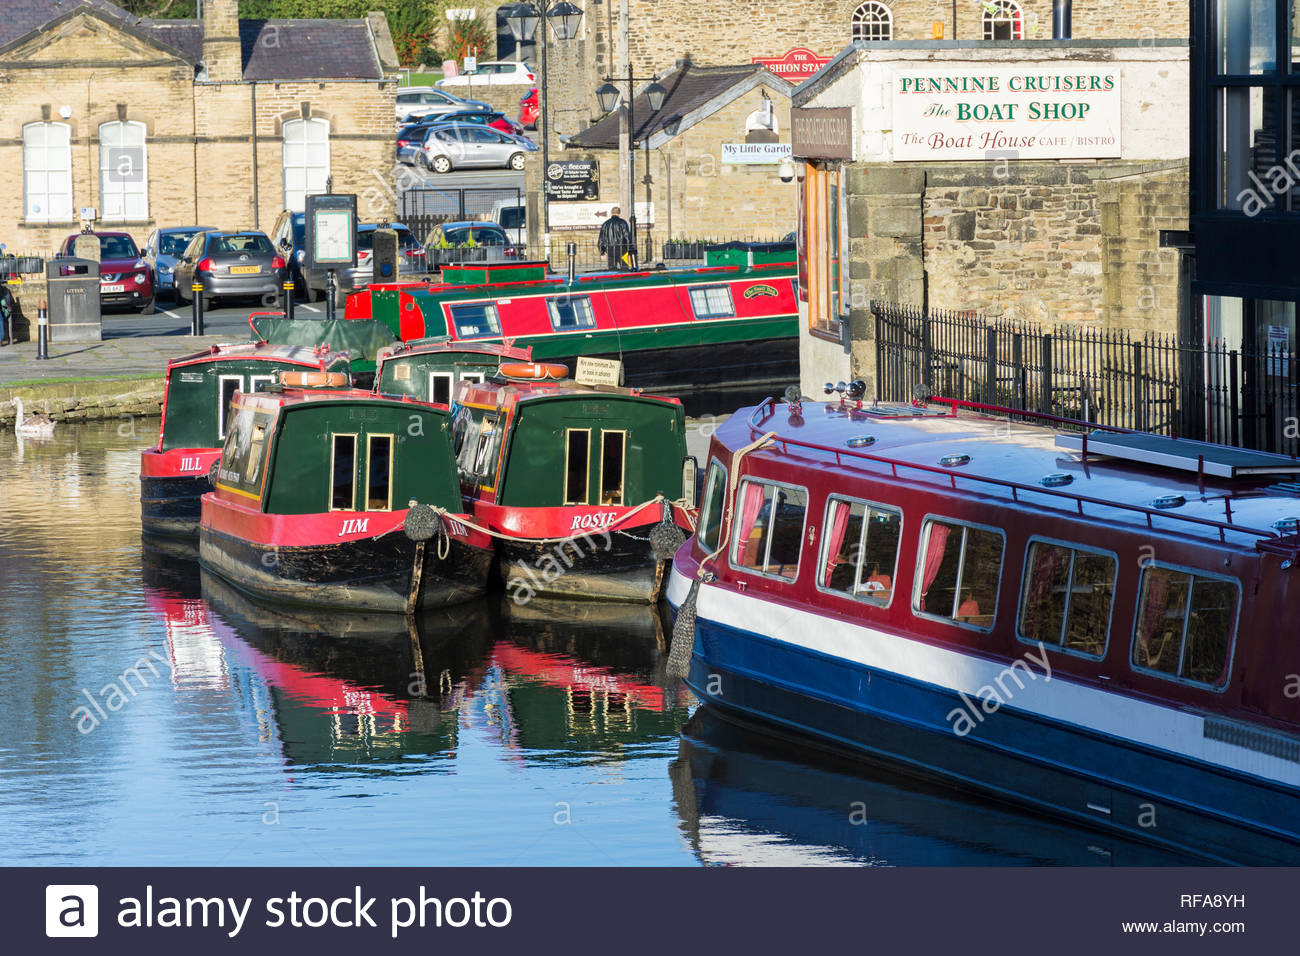 Canal boats outside Pennine Cruisers Boat Shop and the Boat House in Skipton, North Yorkshire, England, UK - Stock Image